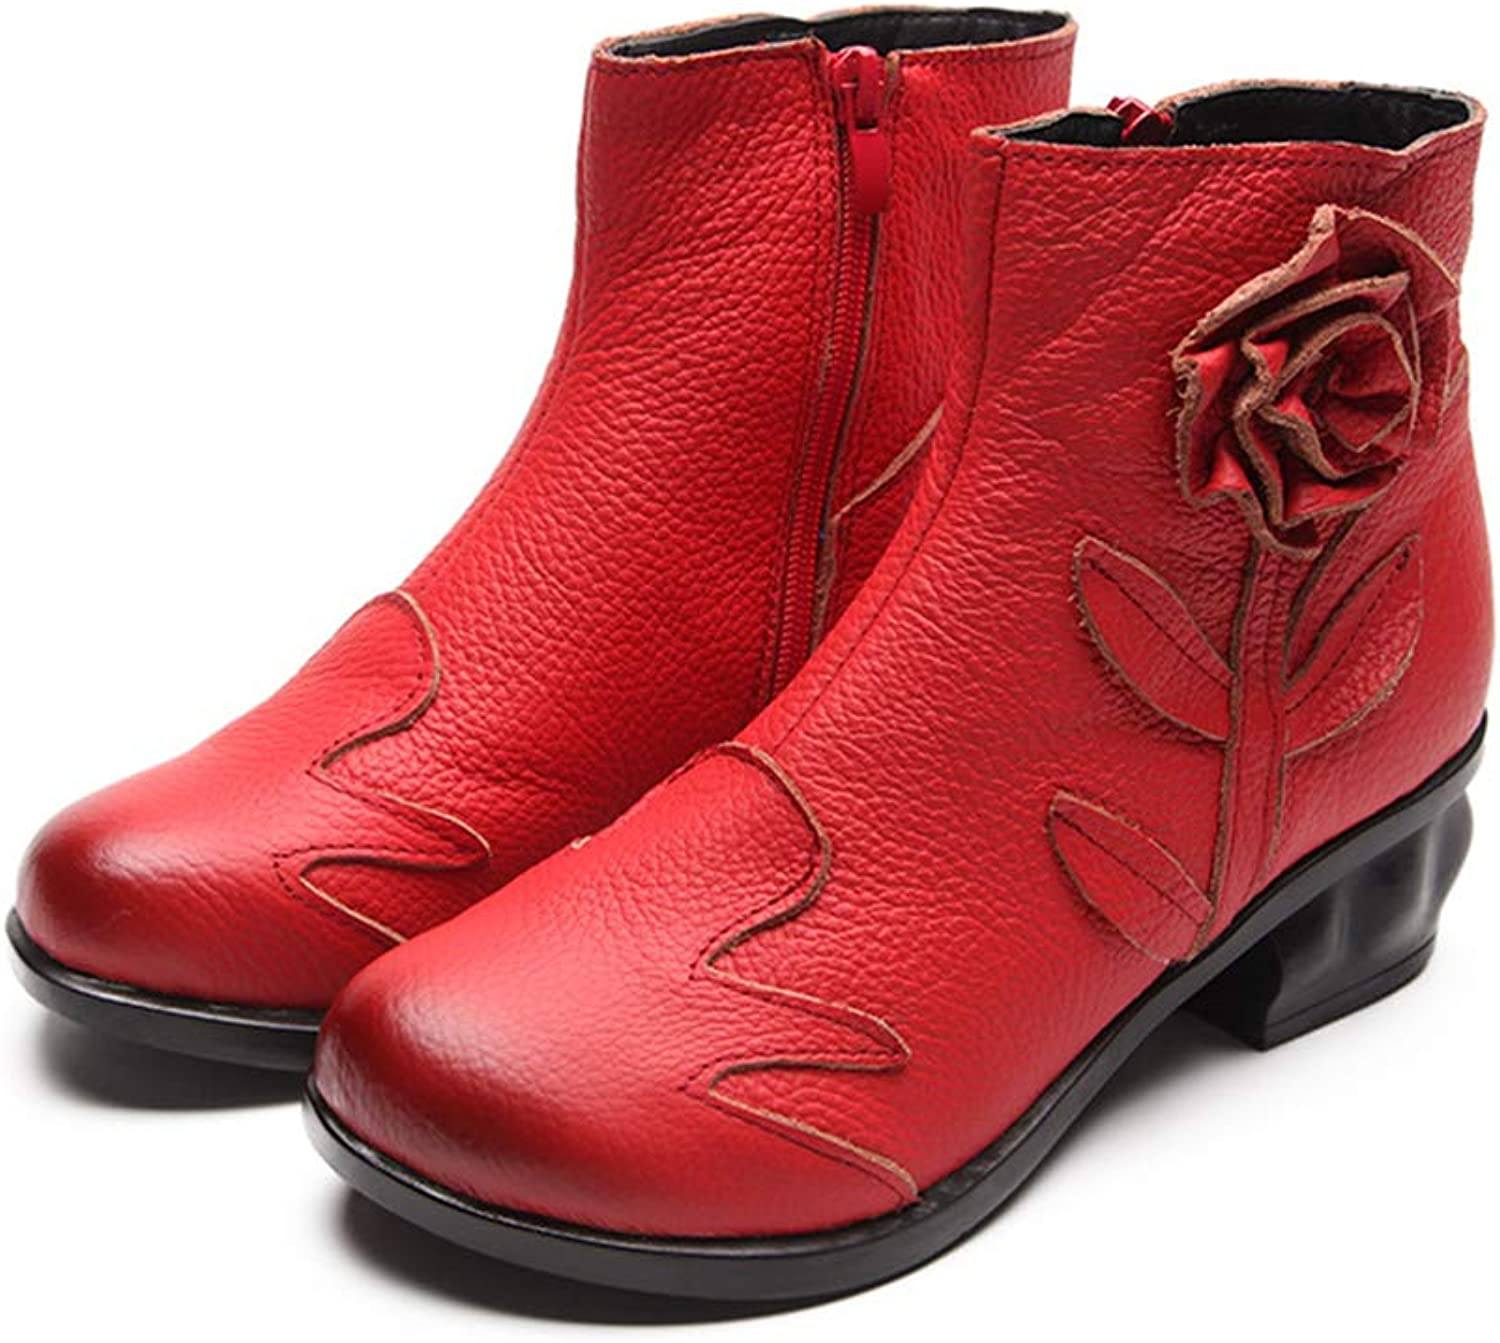 A-LING Women's Retro Genuine Leather Side Zipper Martin Boot Round Head Flower Ankle shoes